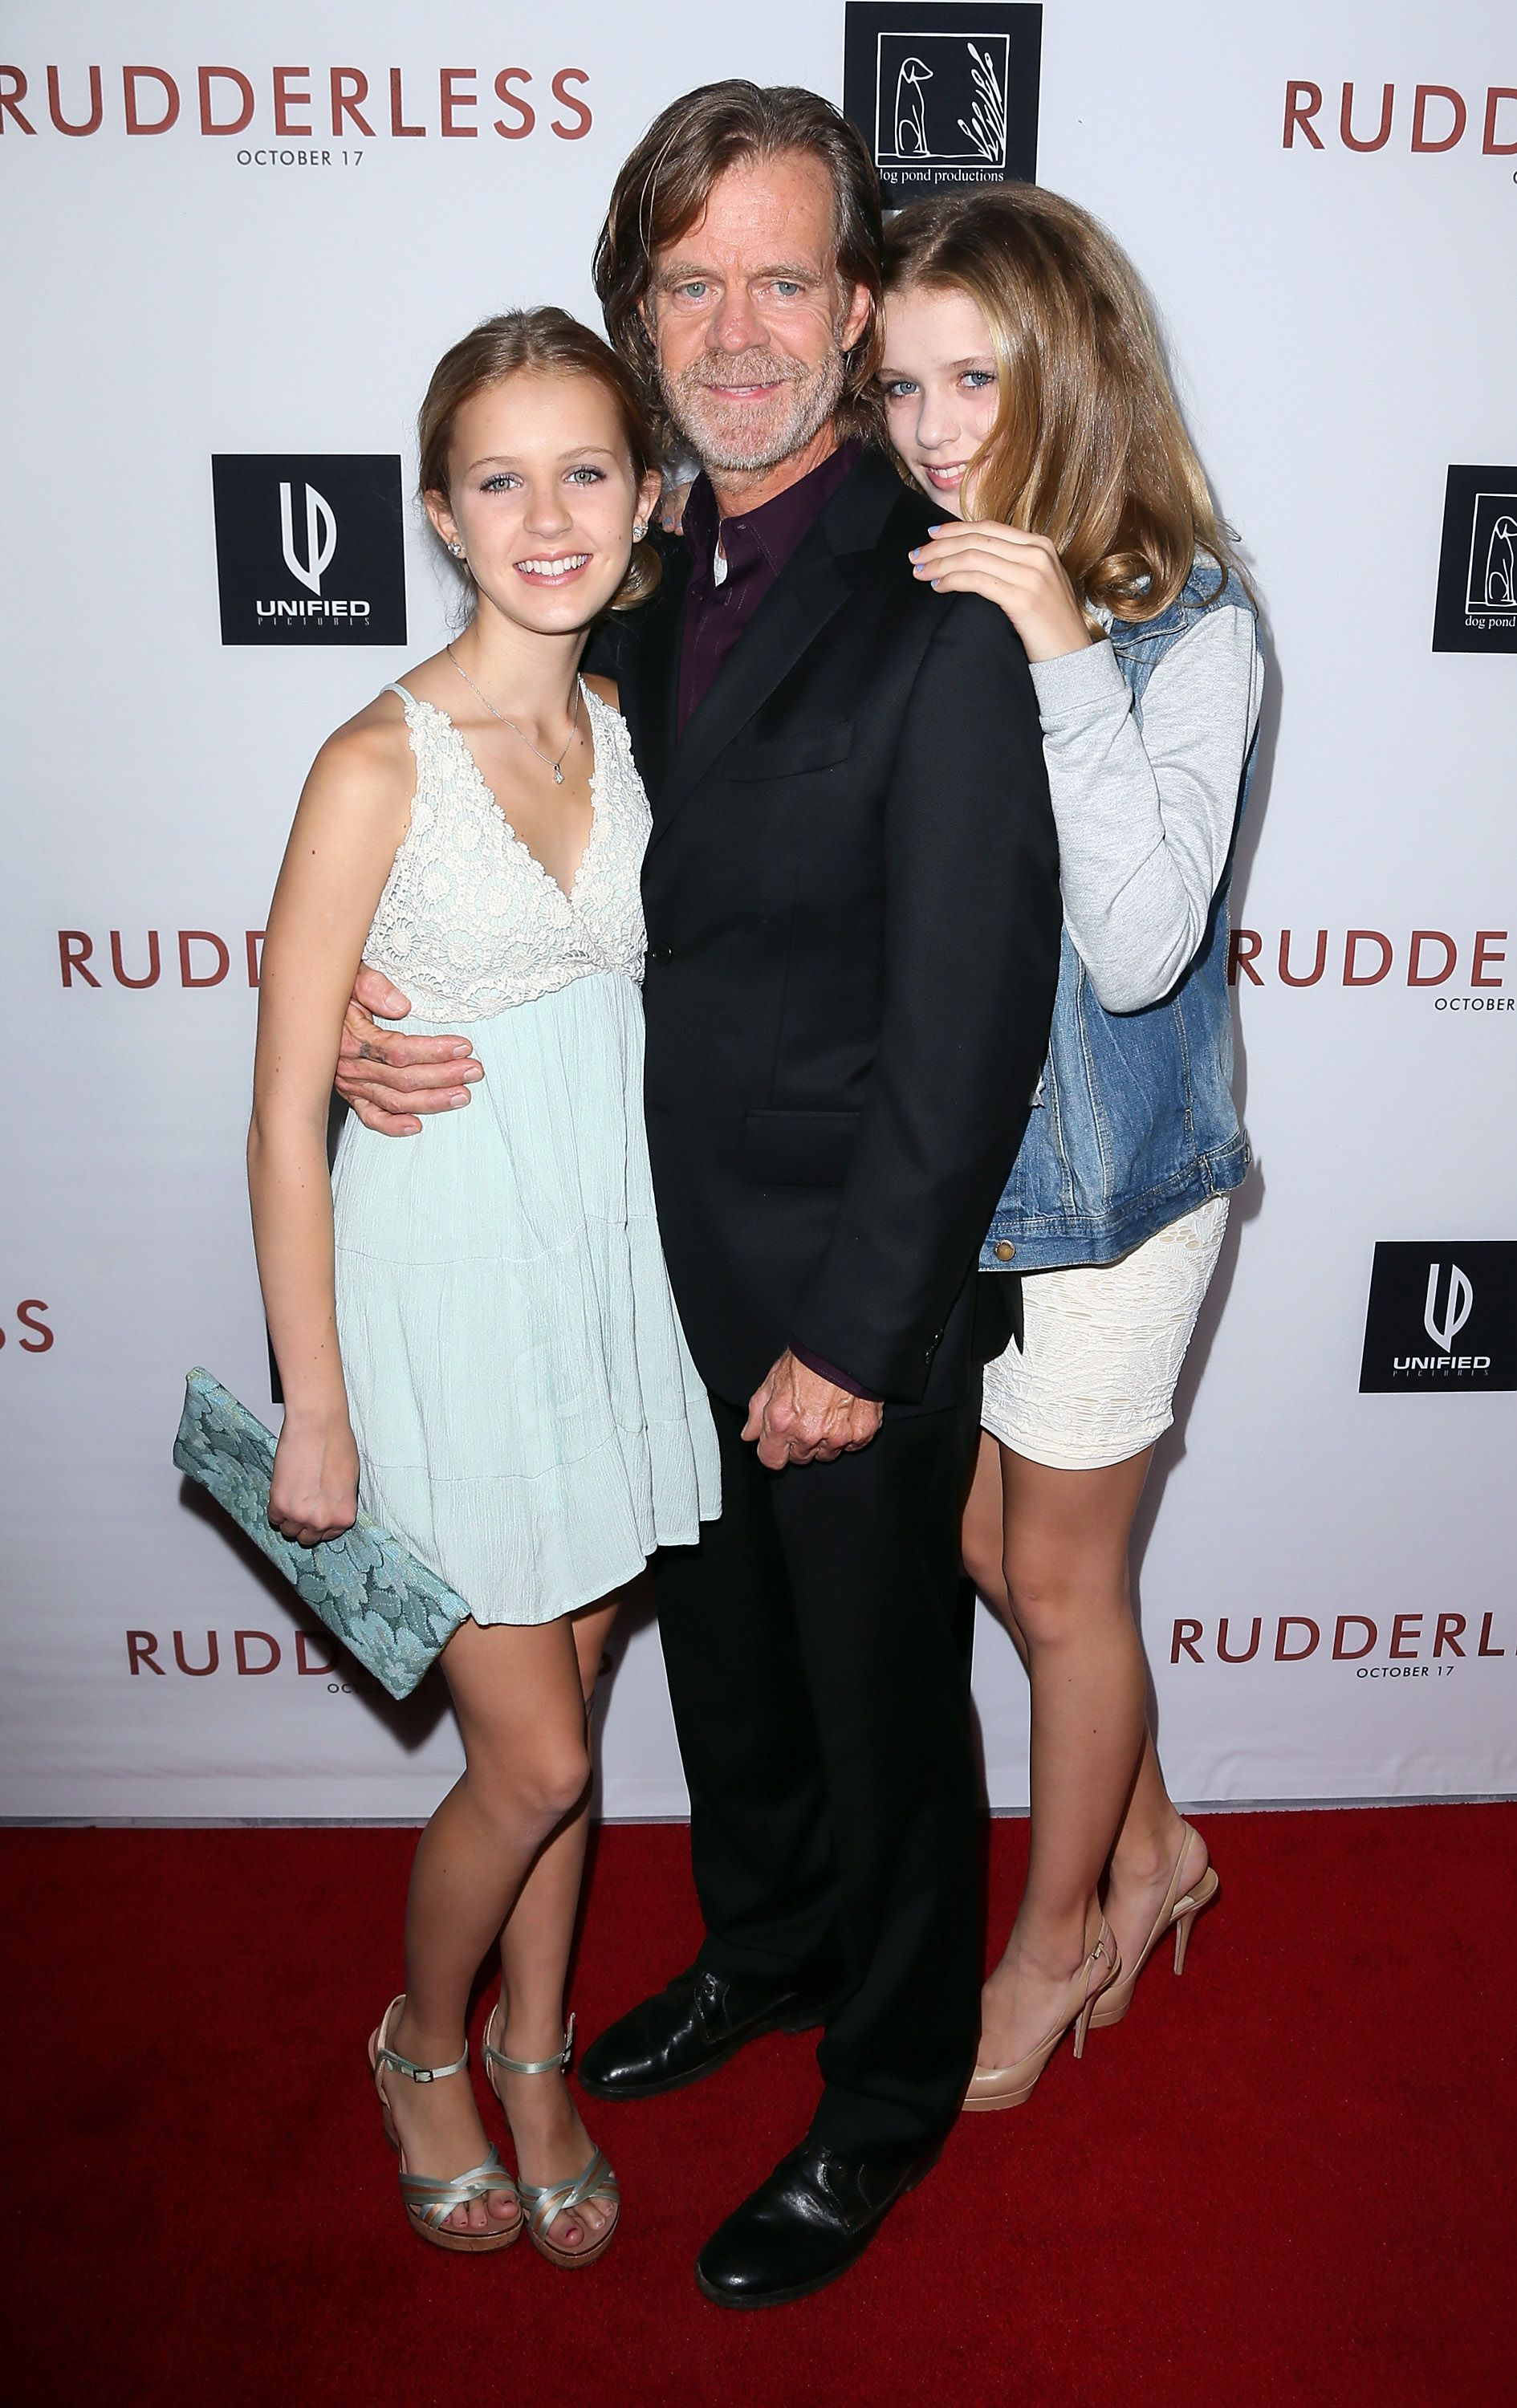 """William H. Macy and his daughters at a screening of """"Rudderless"""" in 2014 / Getty Images"""